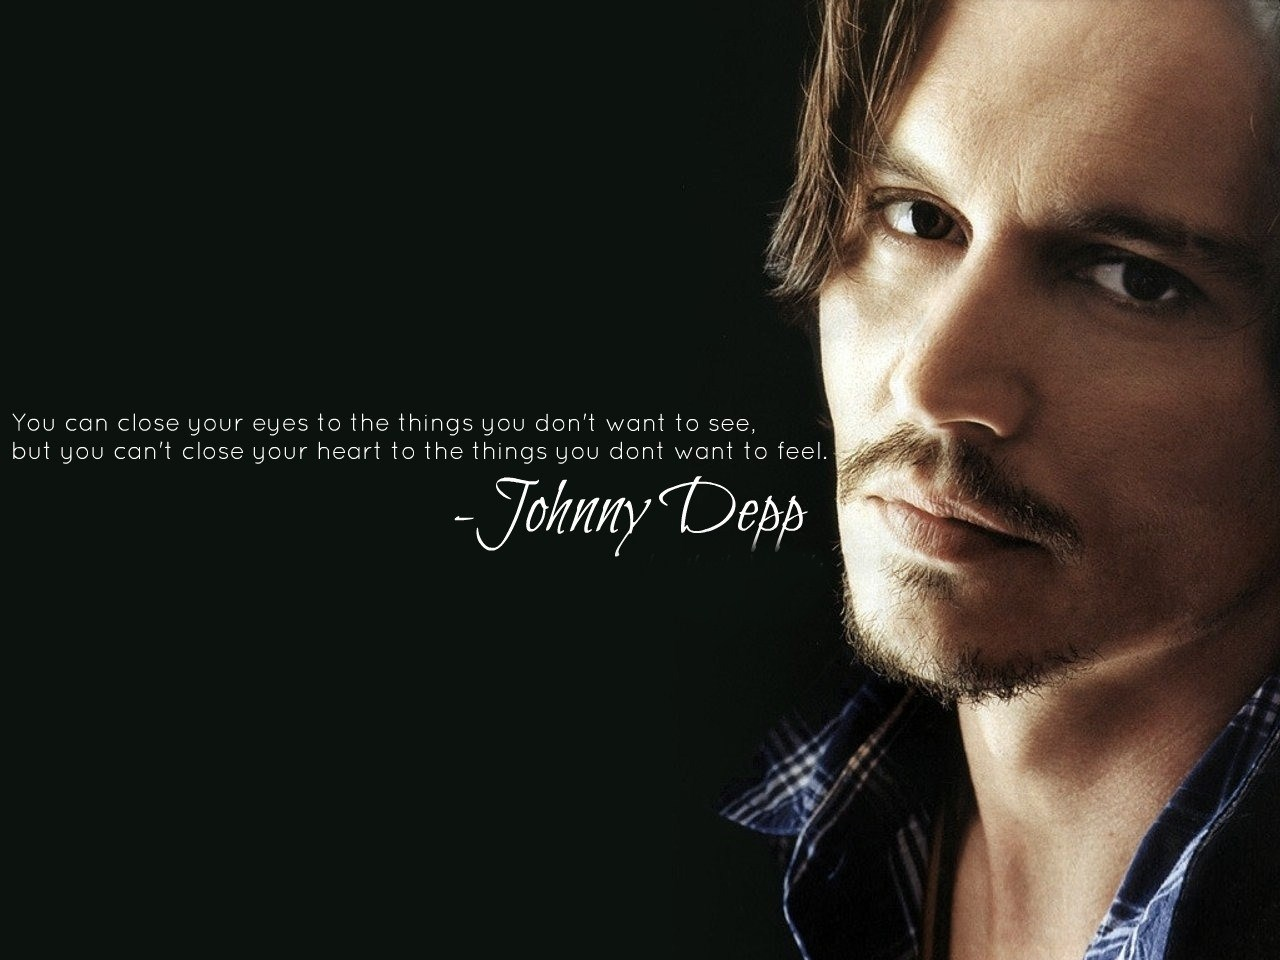 Johnny Depp Love Quotes Wallpaper